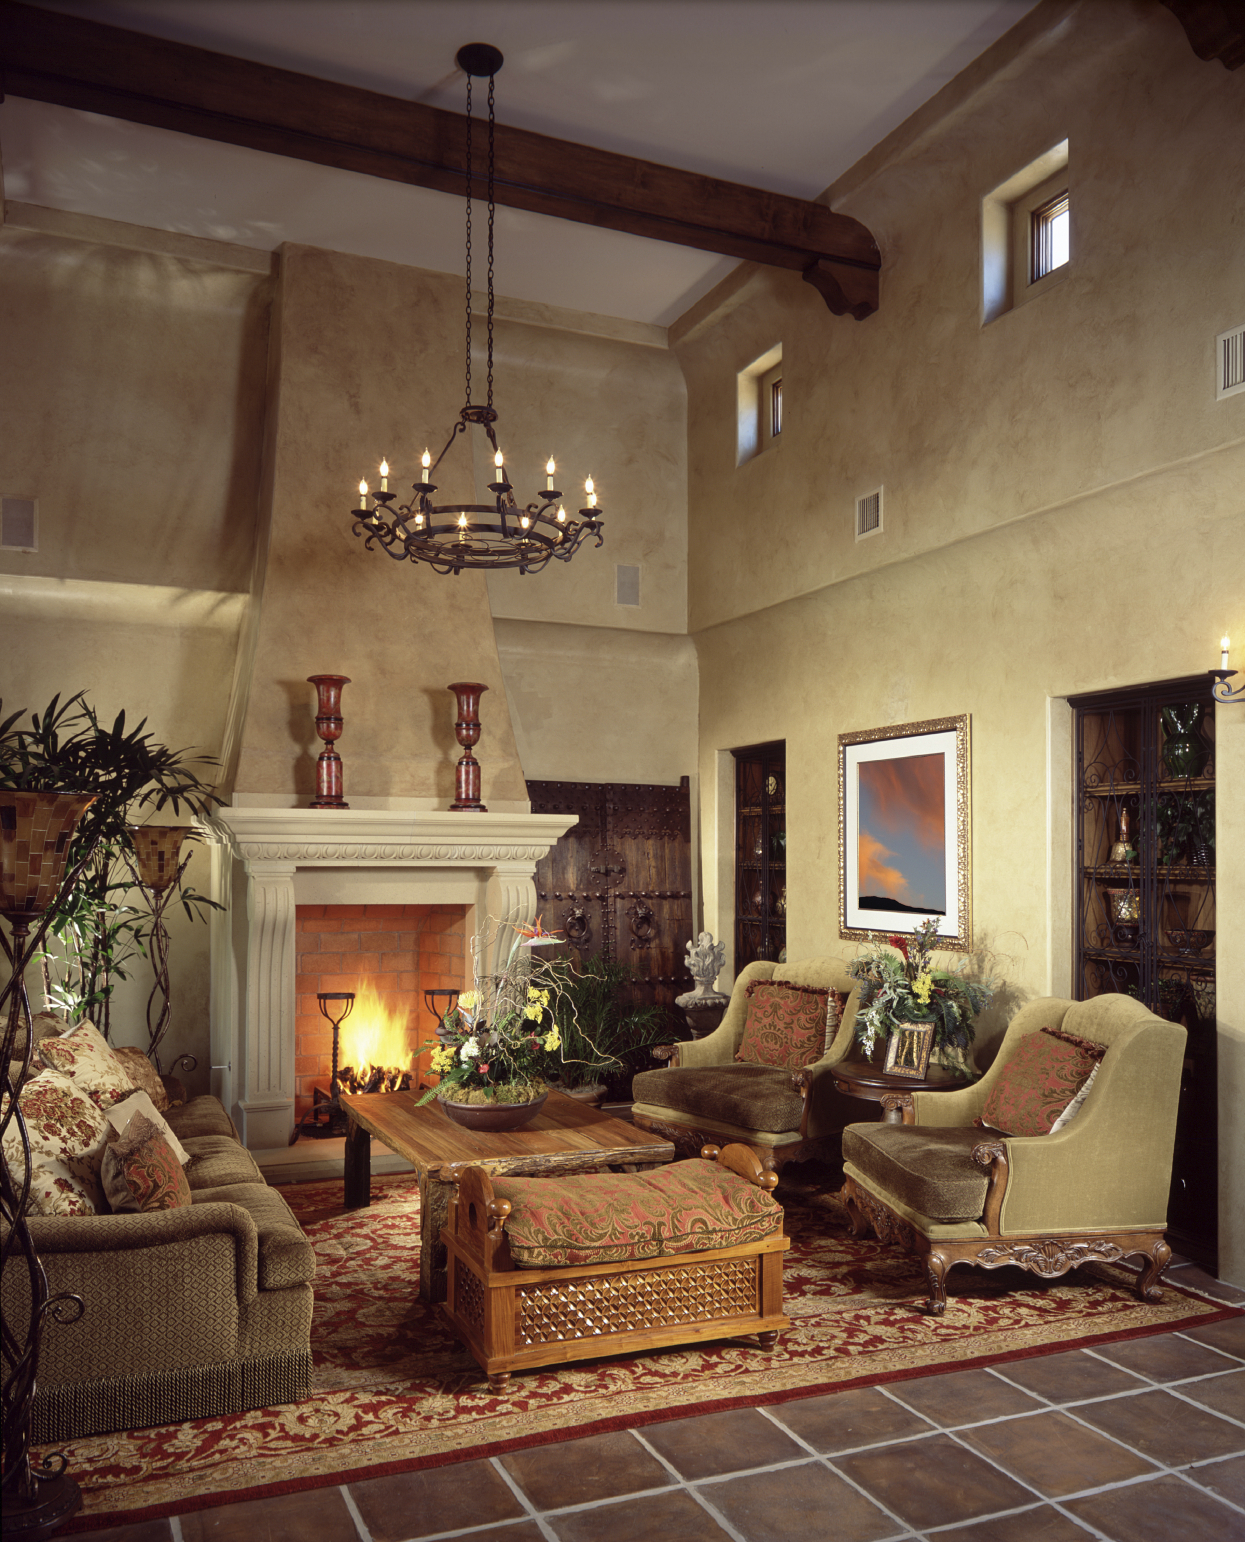 Living Room Fireplace Ideas : 54 Living Rooms with Soaring 2-Story & Cathedral Ceilings